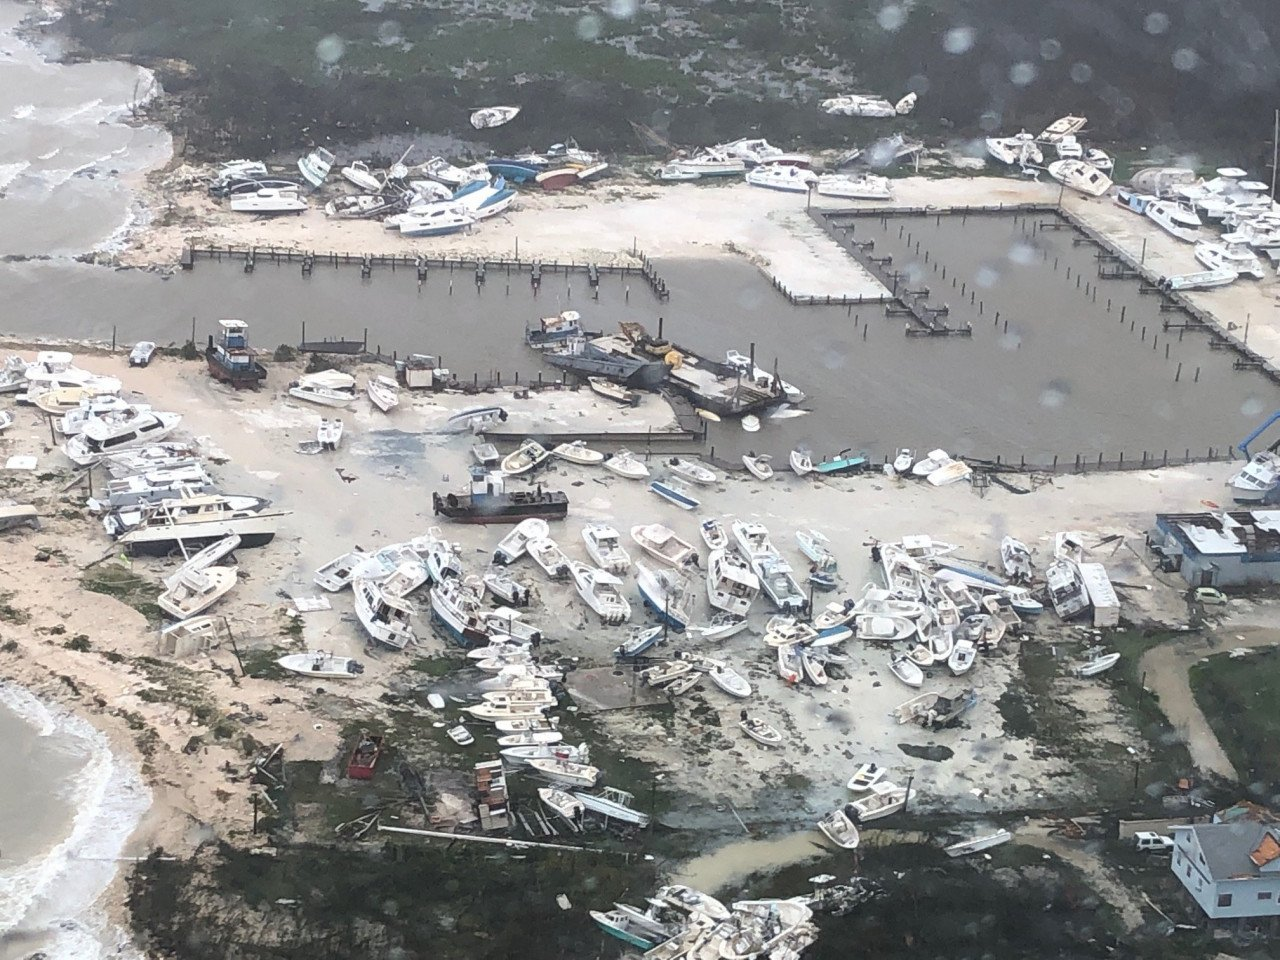 Goodman-Gable-Gould/Adjusters International Donates $25,000 to Mission Resolve to Assist Bahamian Victims of Hurricane Dorian Thumbnail Image